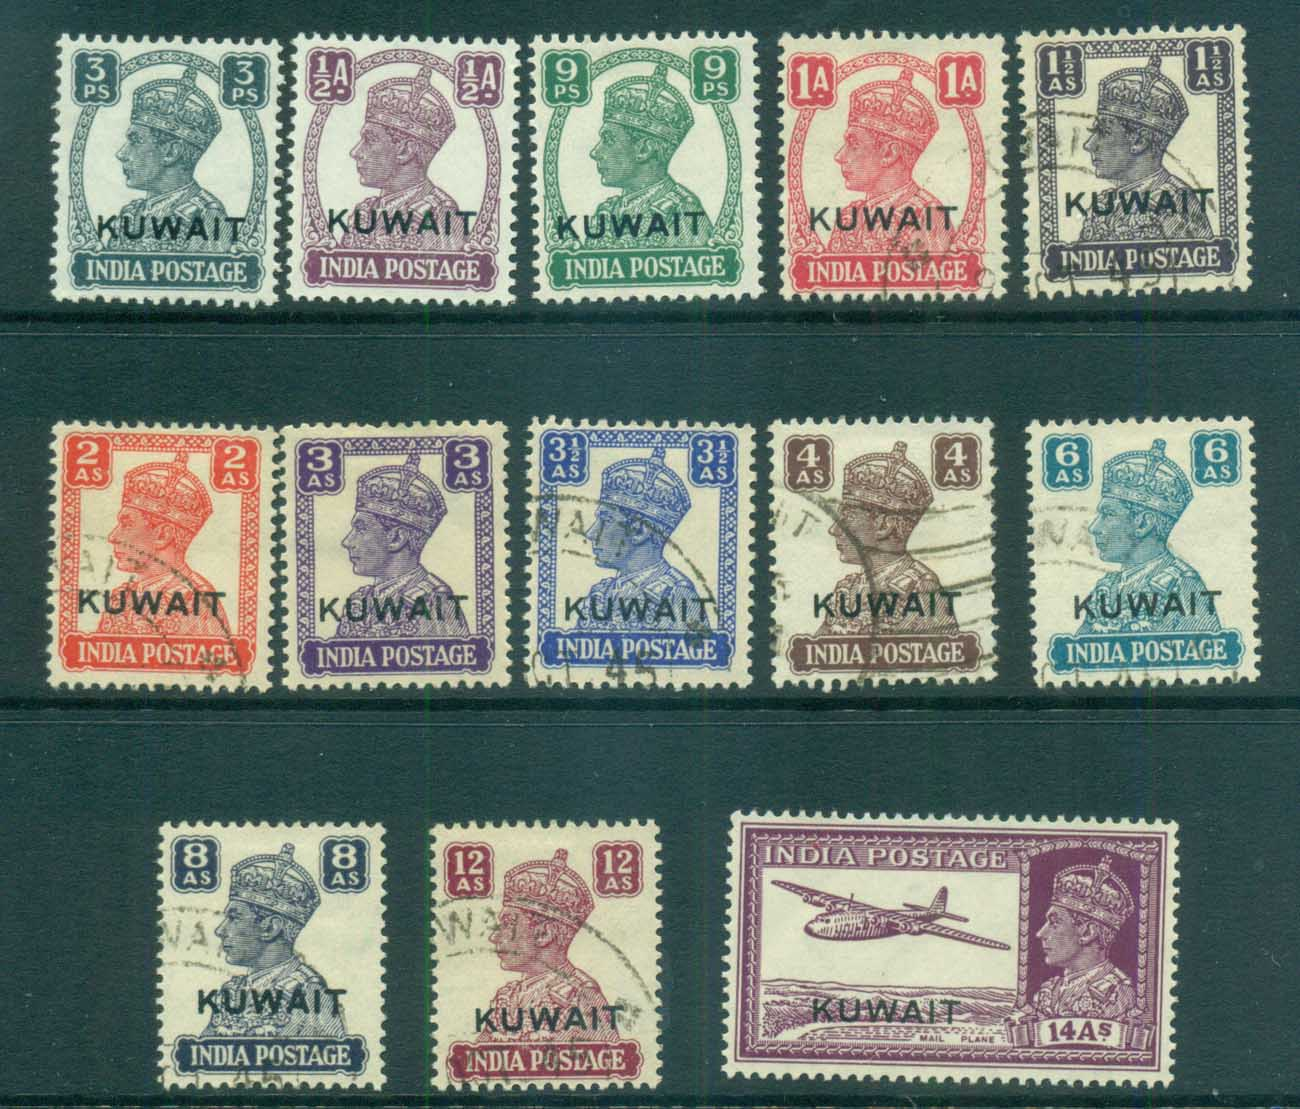 Kuwait 1945 KGVI india Opts MLH/FU lot73730